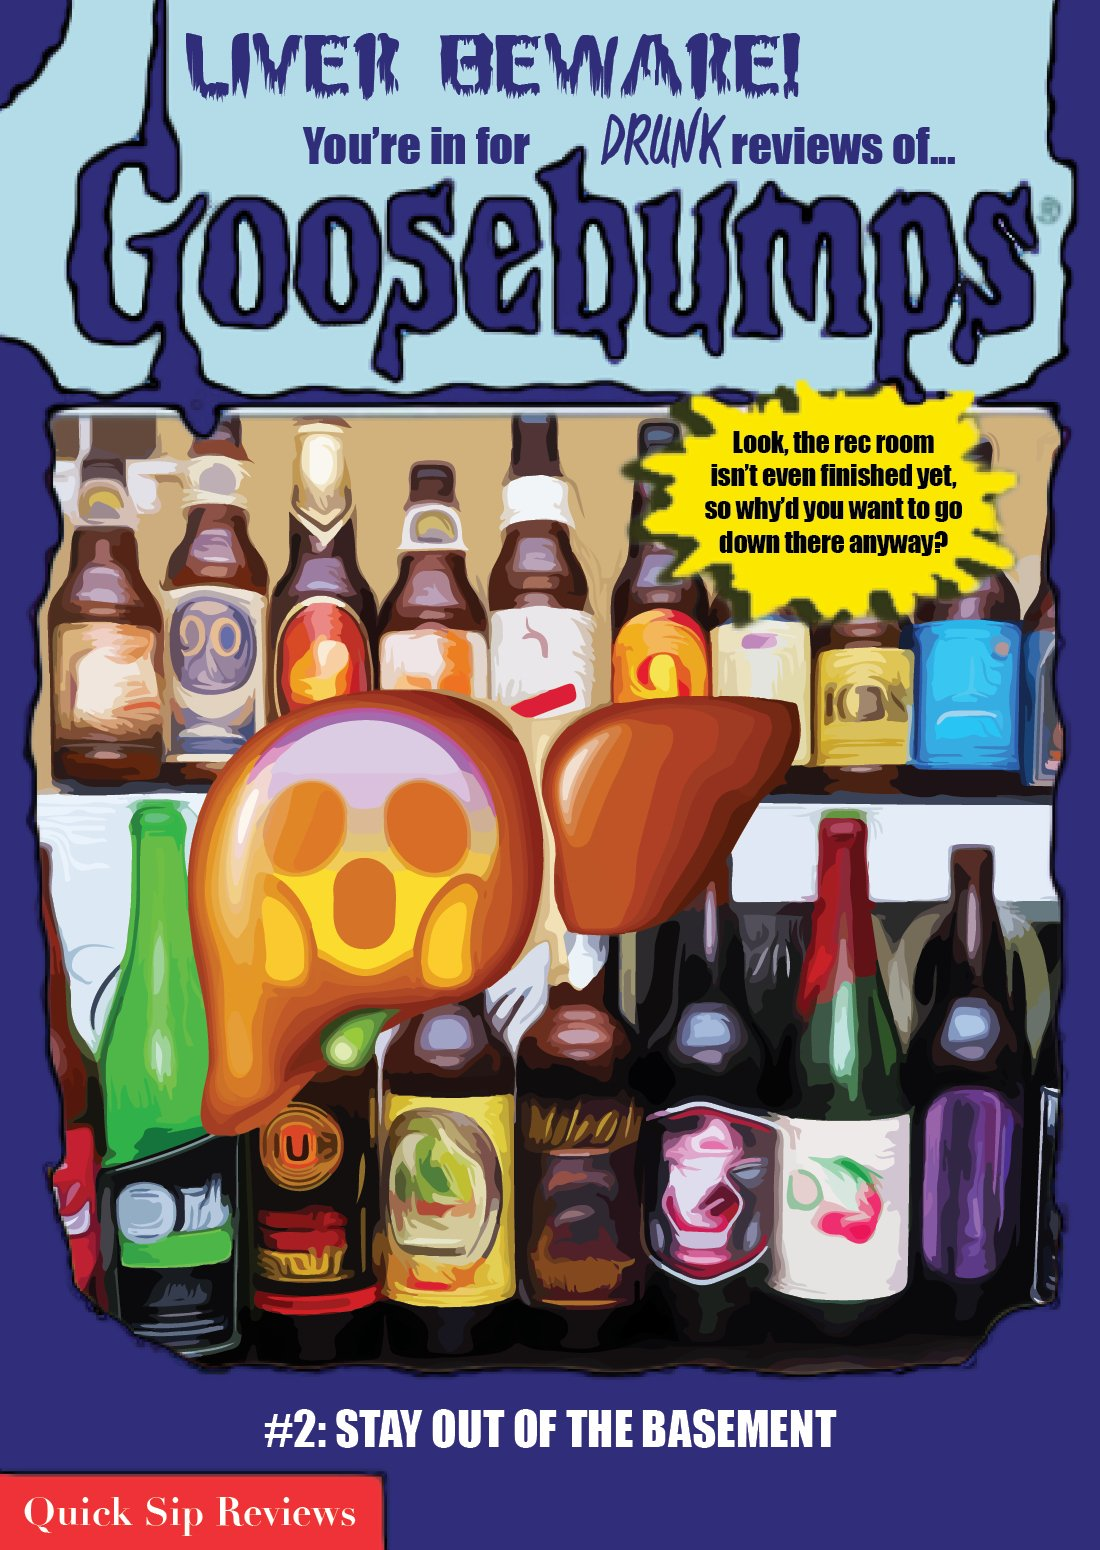 & speaking of Liver Beware? Guess what drops very soon? My Review of Goosebumps #2: STAY OUT OF THE BASEMENT!!! #PatreMonday https://t.co/AQY0Z7A1CG